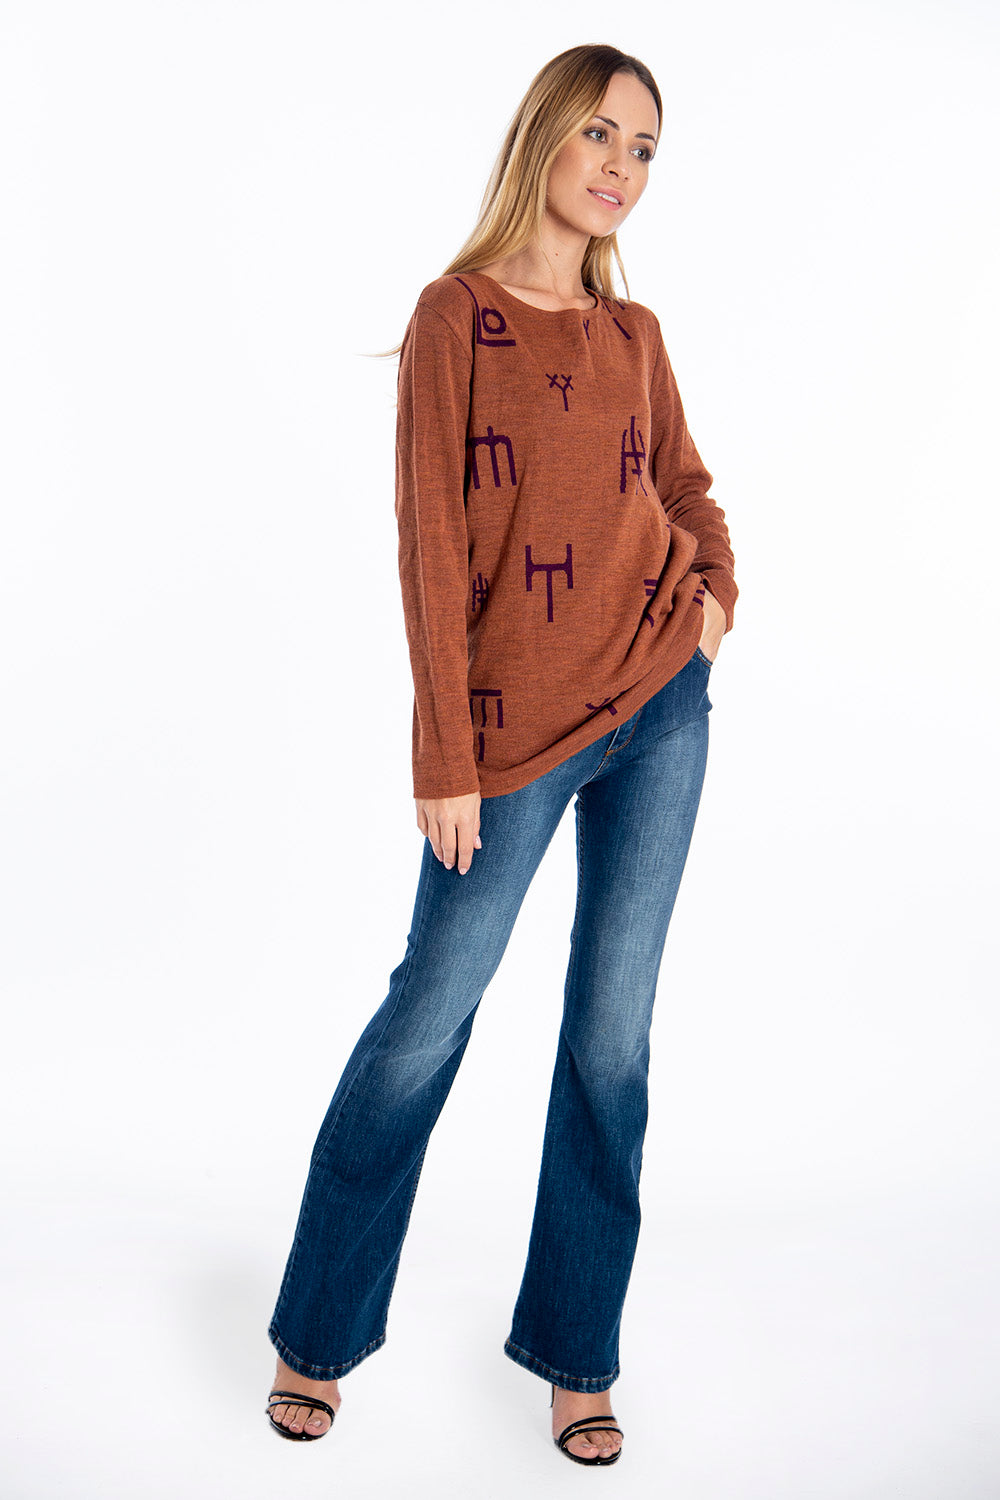 Infinity Knitwear oversized jumper with letters design